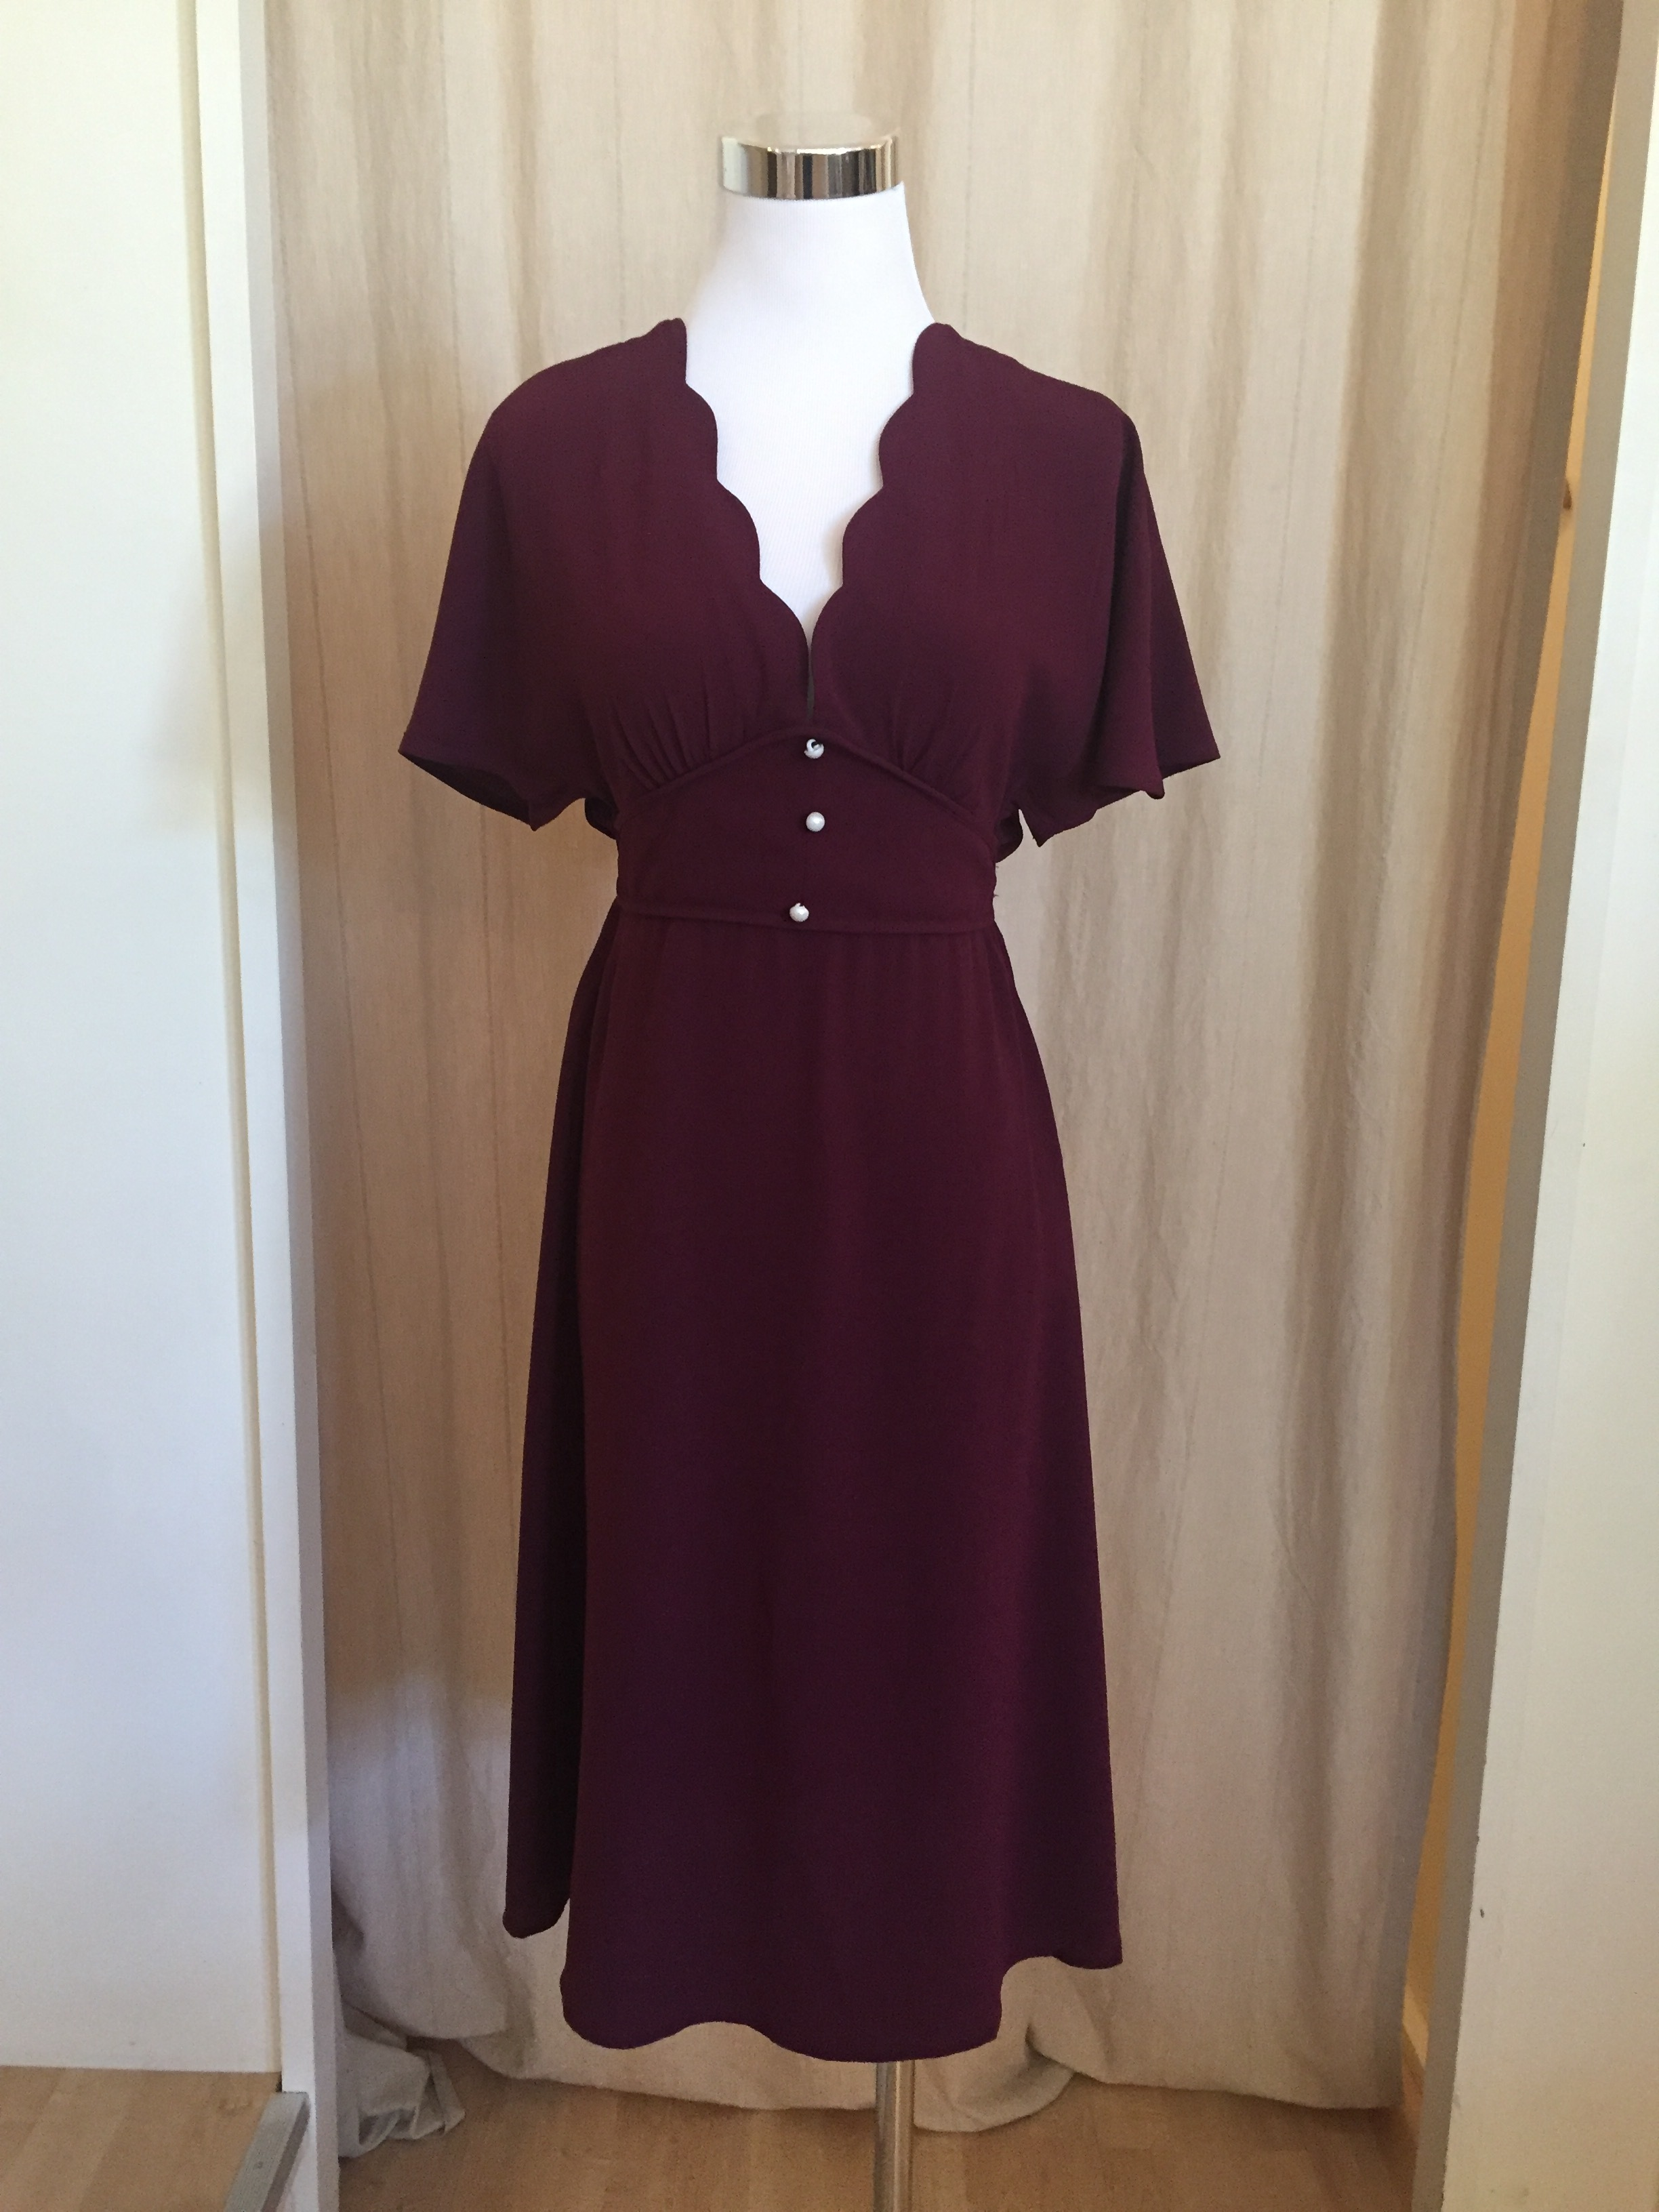 Scallop Edge Burgundy Dress, $38